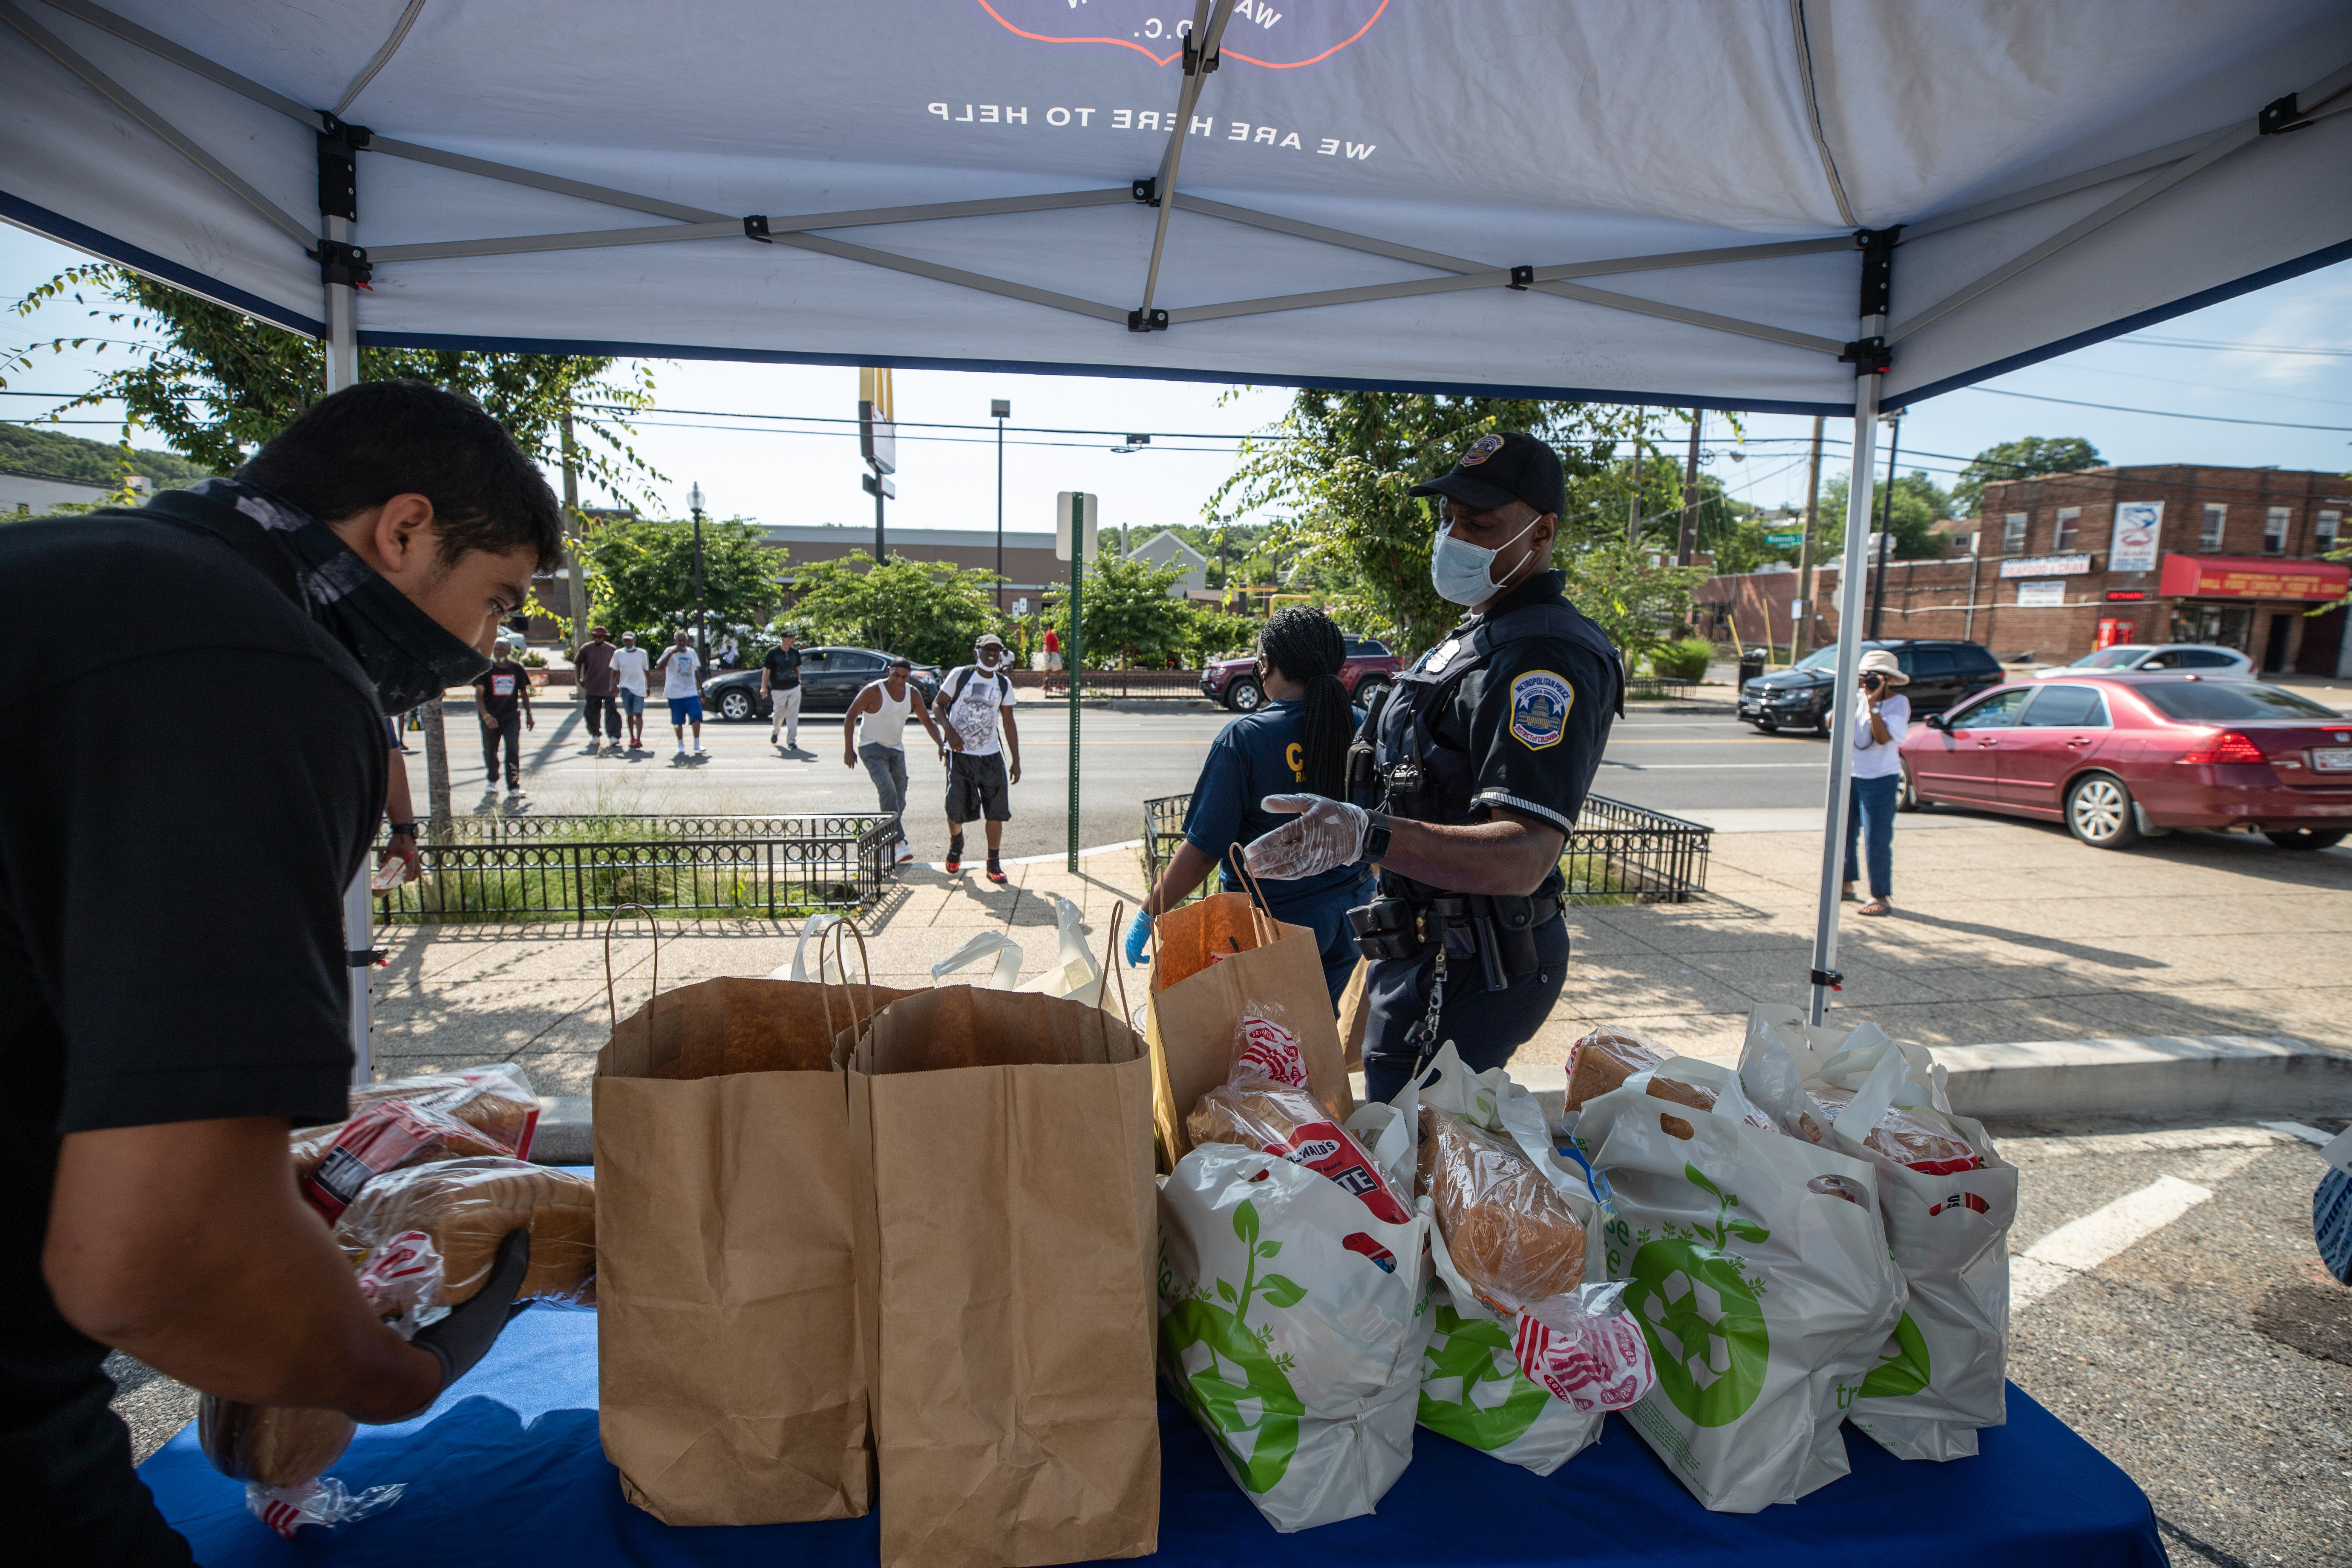 D.C. Metro Police Officers pass out grocery bags to people in D.C.'s Sixth District. (Photo: Kaylee C. Greenlee - Daily Caller News Foundation)